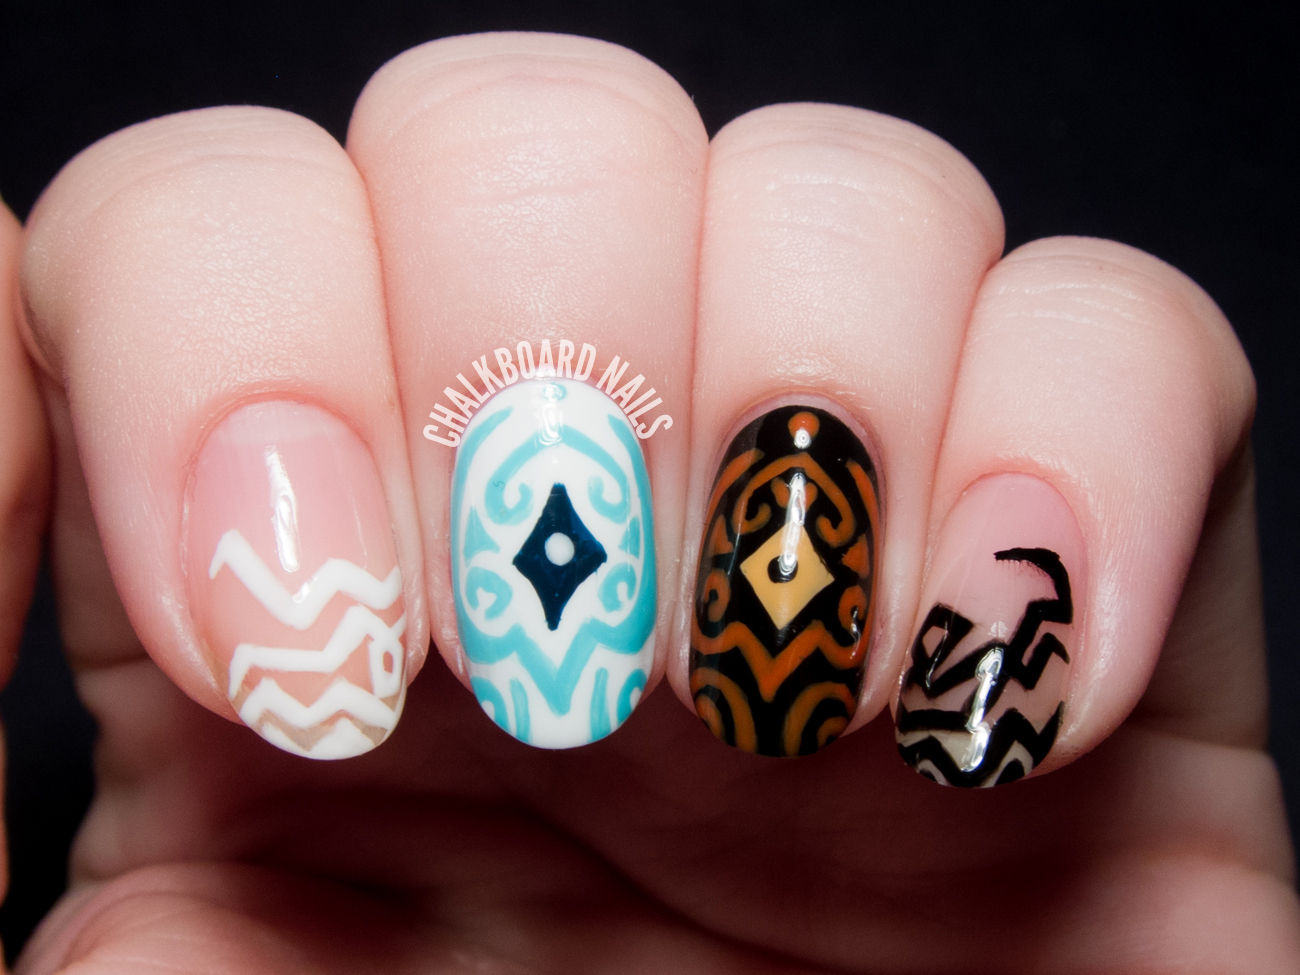 Geeky Nail Designs: The Weird, the Cute, and the Impractical • Geek ...